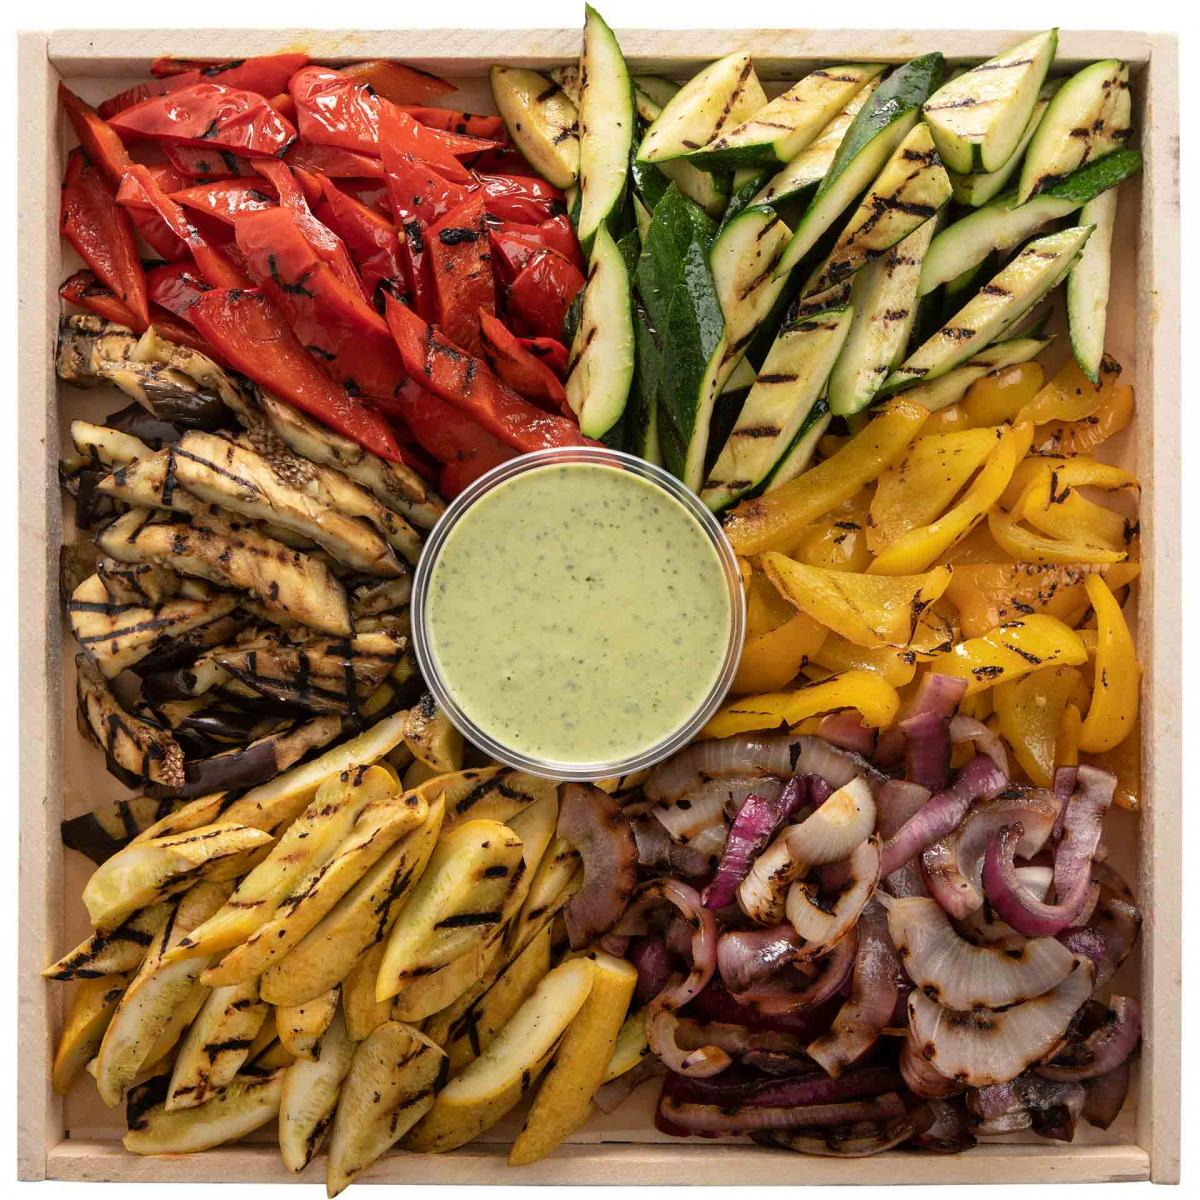 Large Grilled Vegetable Platter